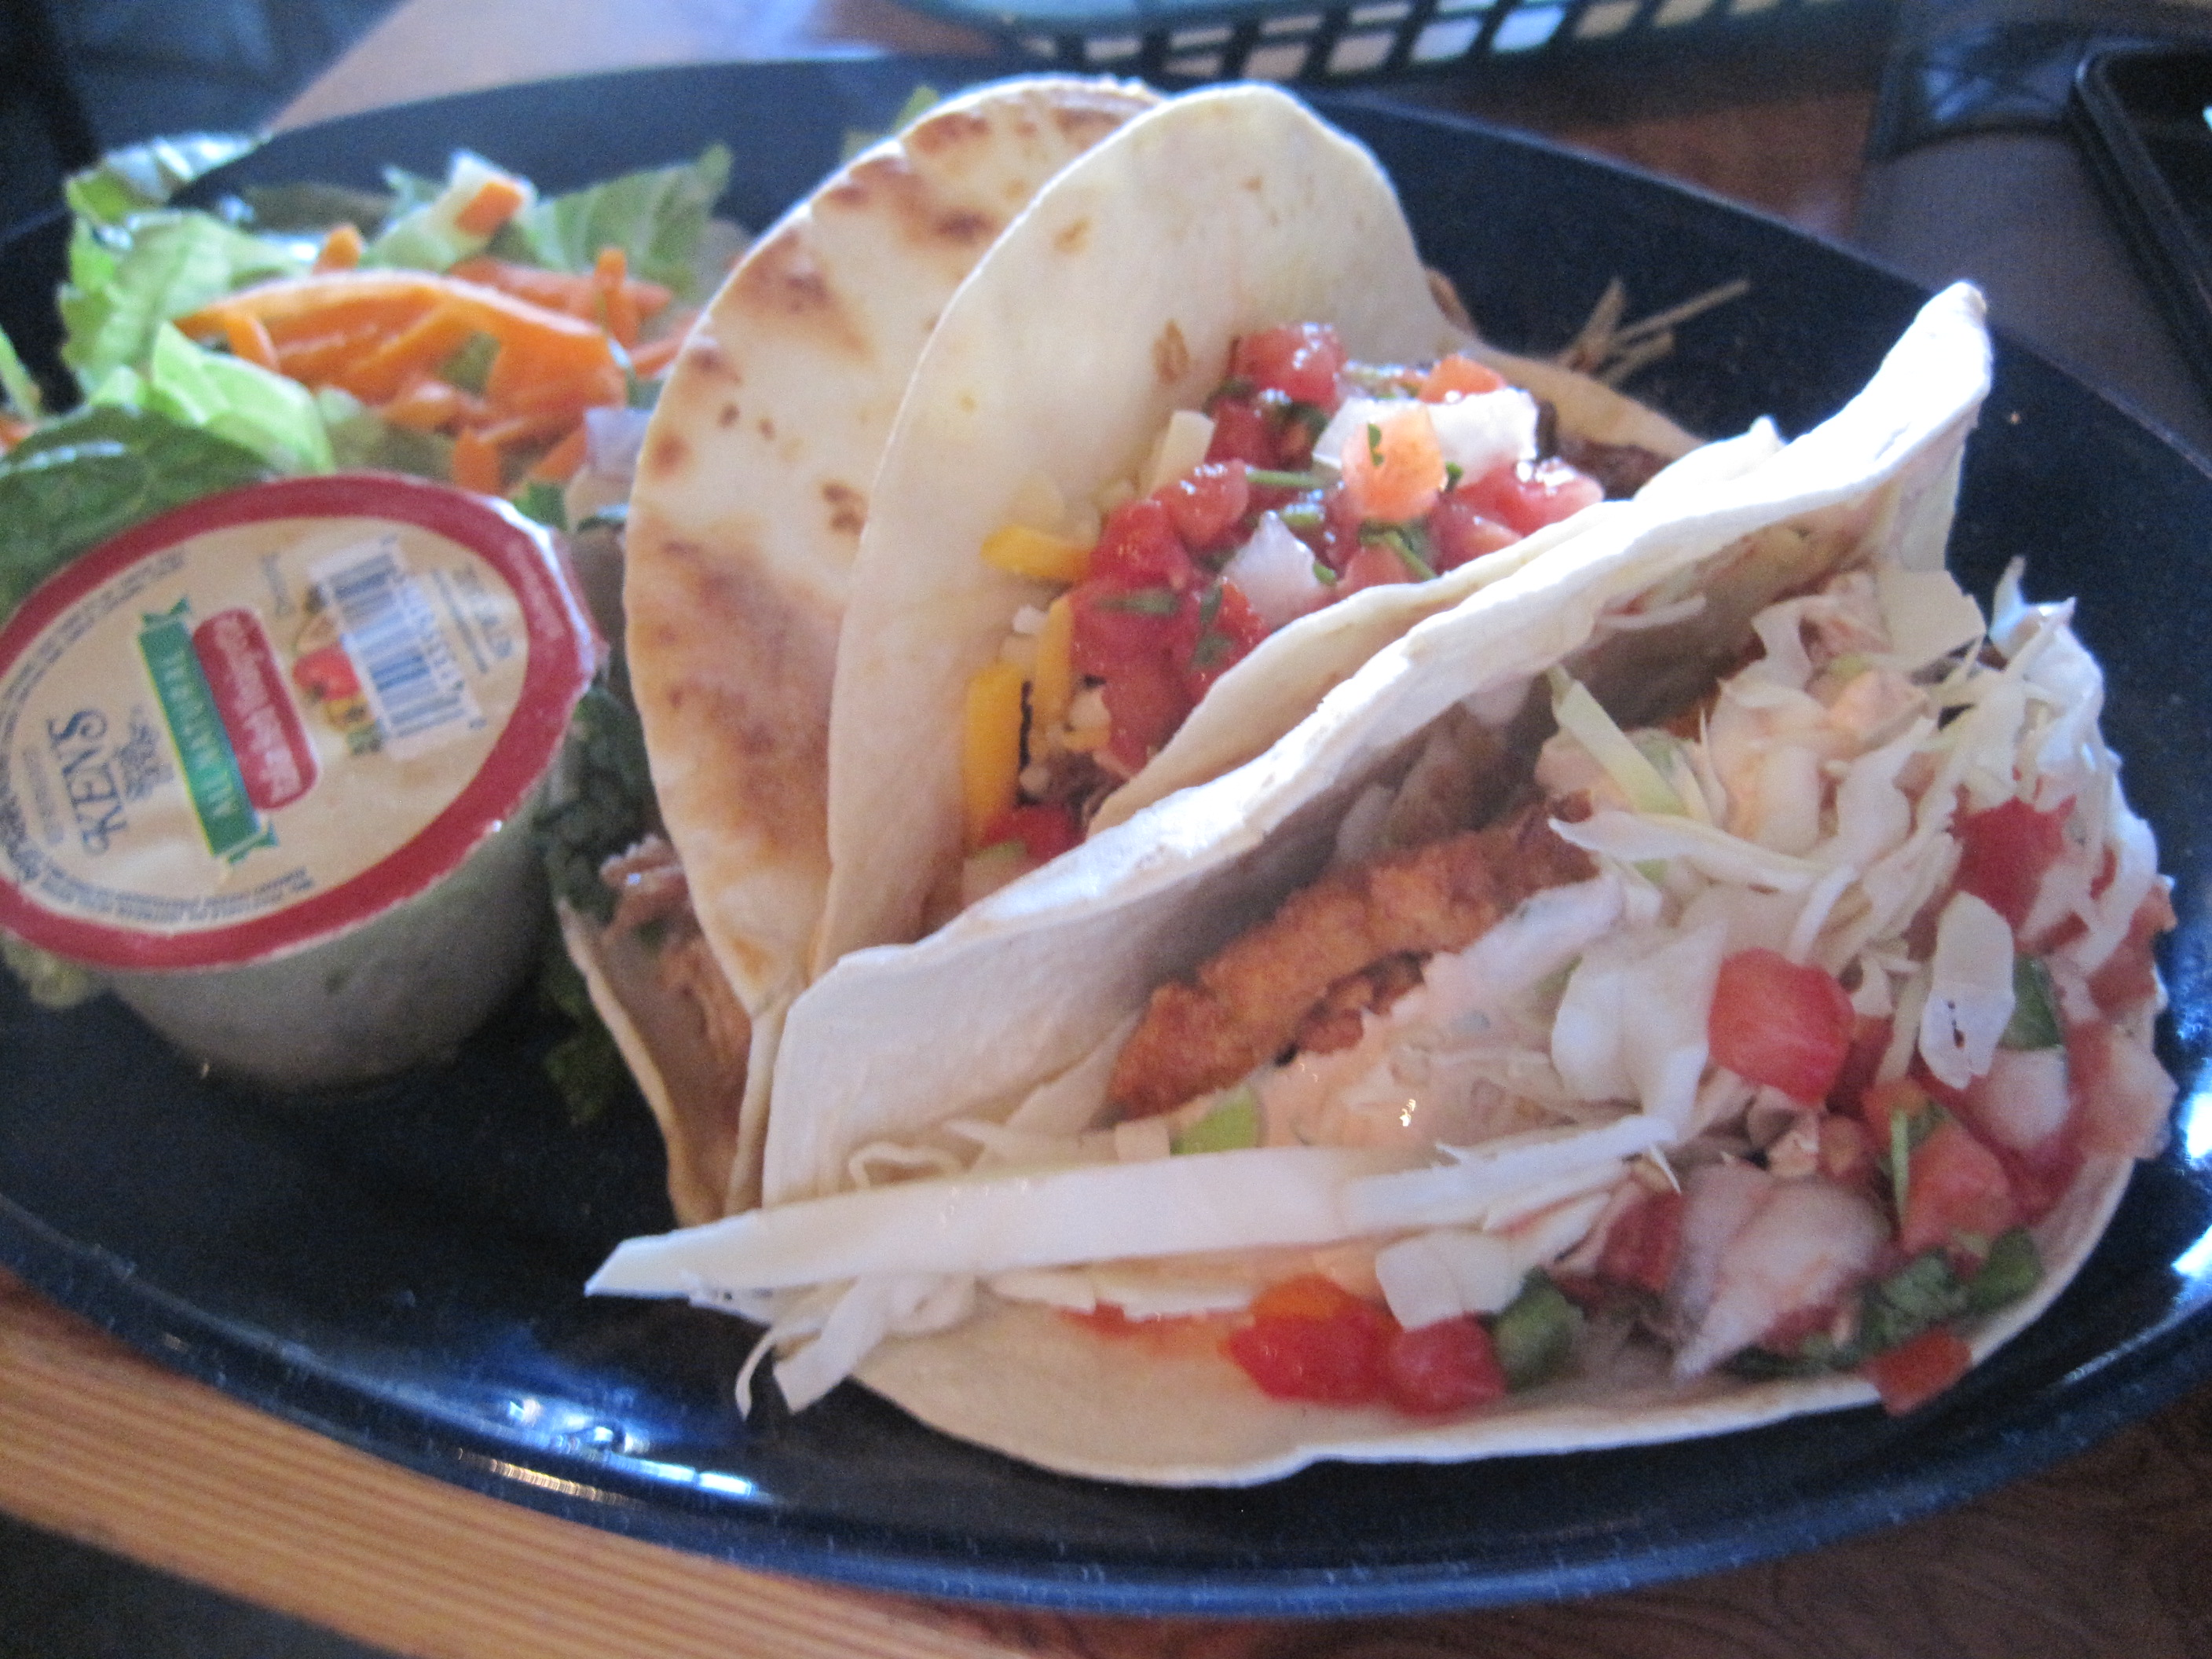 Raging burrito and taco decatur ga food near snellville for Fish tacos near me